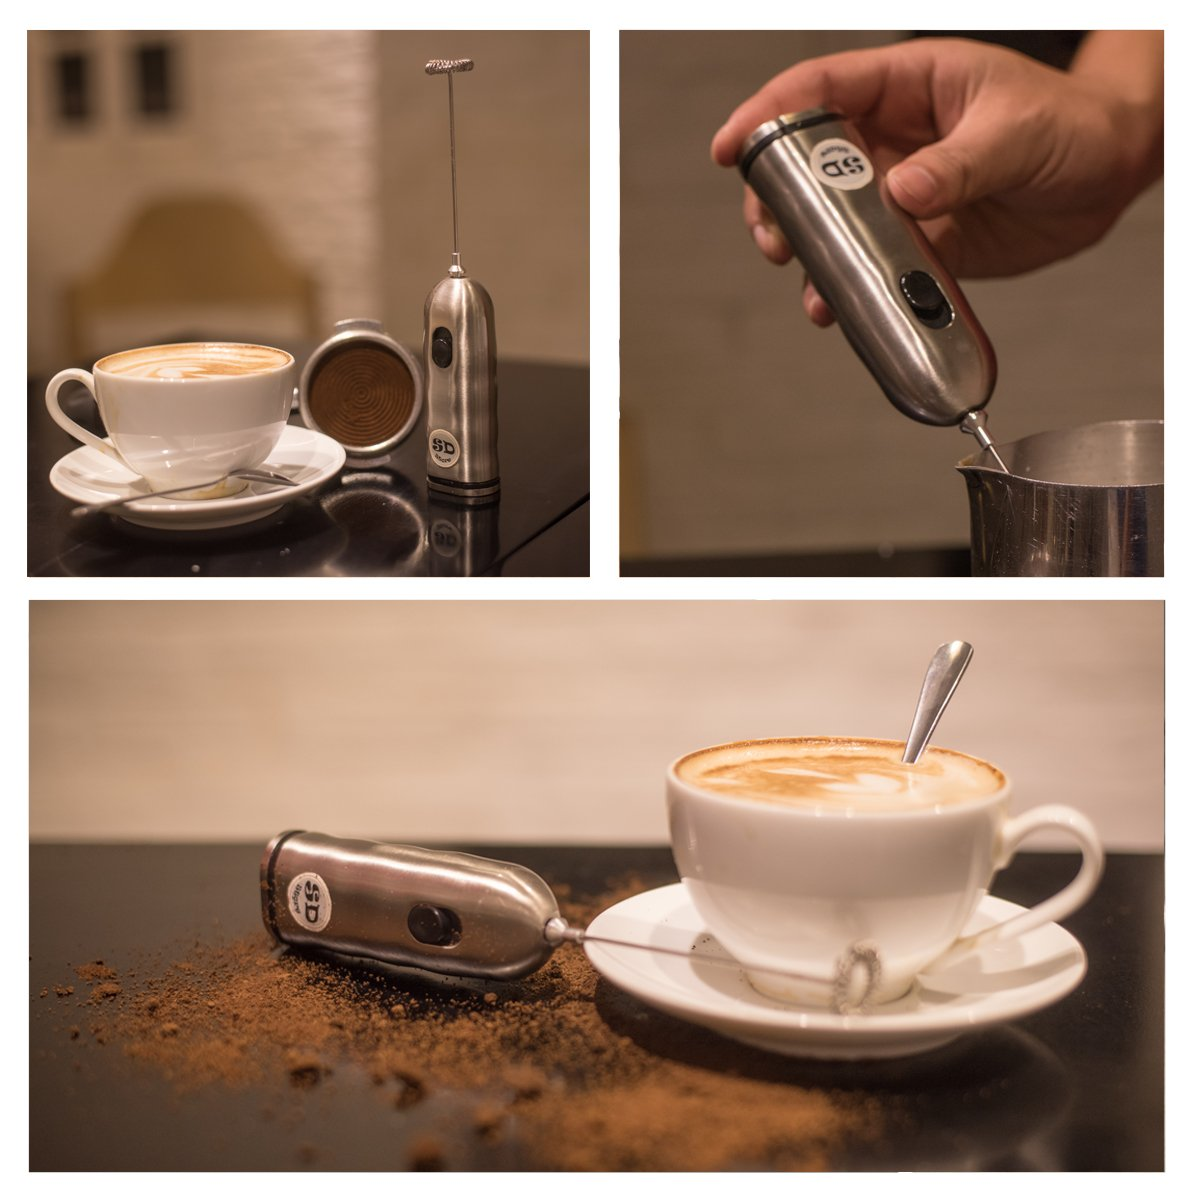 HBT Milk Frother Mixer Handheld Espresso Stirrers - Frothing Wand Battery Operated Electric Foam Maker for Coffee|Latte|Cappuccino|Hot Chocolate - Home Gifts Stainless Steel with Free Spoon|Ebook by HBT (Image #3)